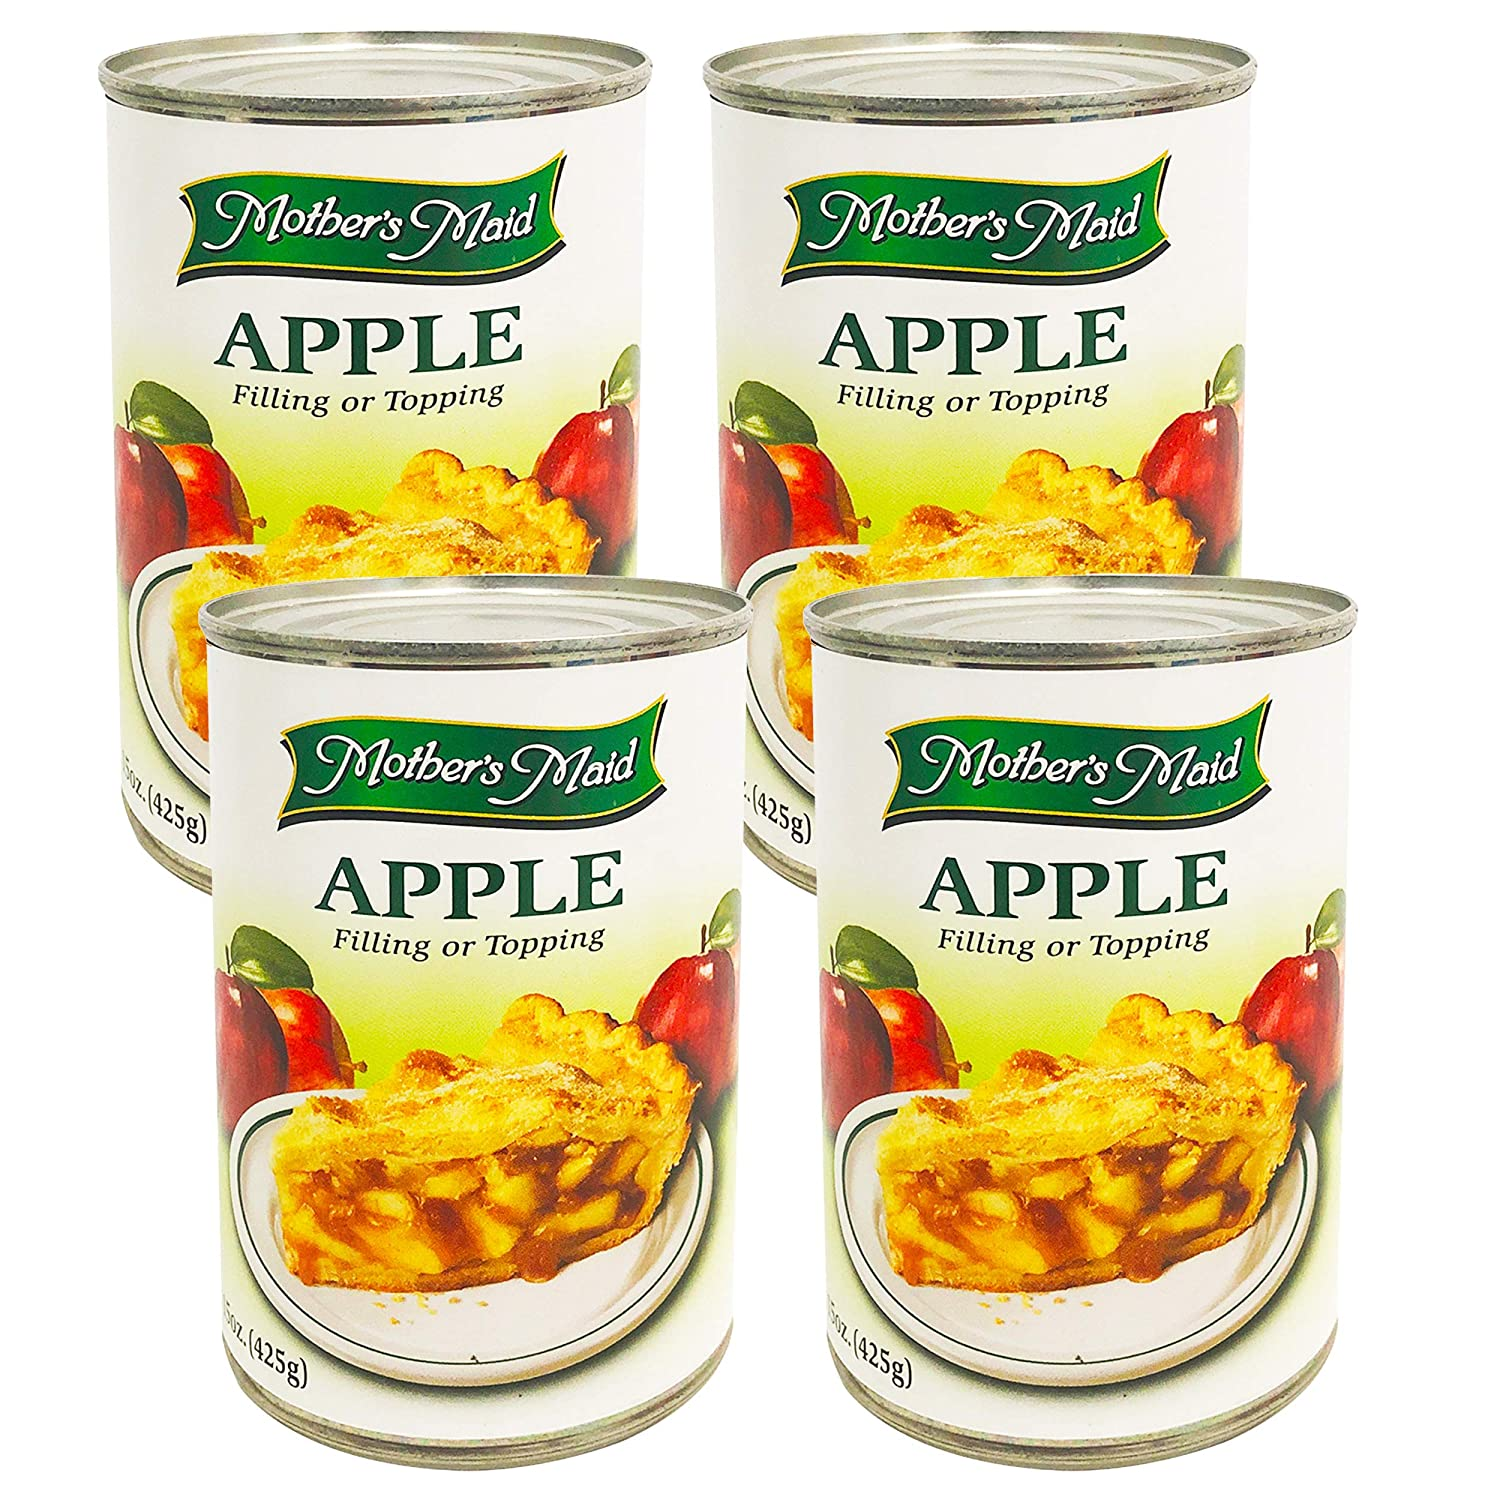 Apple Pie Filling & Topping (Pack of 4-15oz) 60 ounces Total - Makes 2 Apple Pies